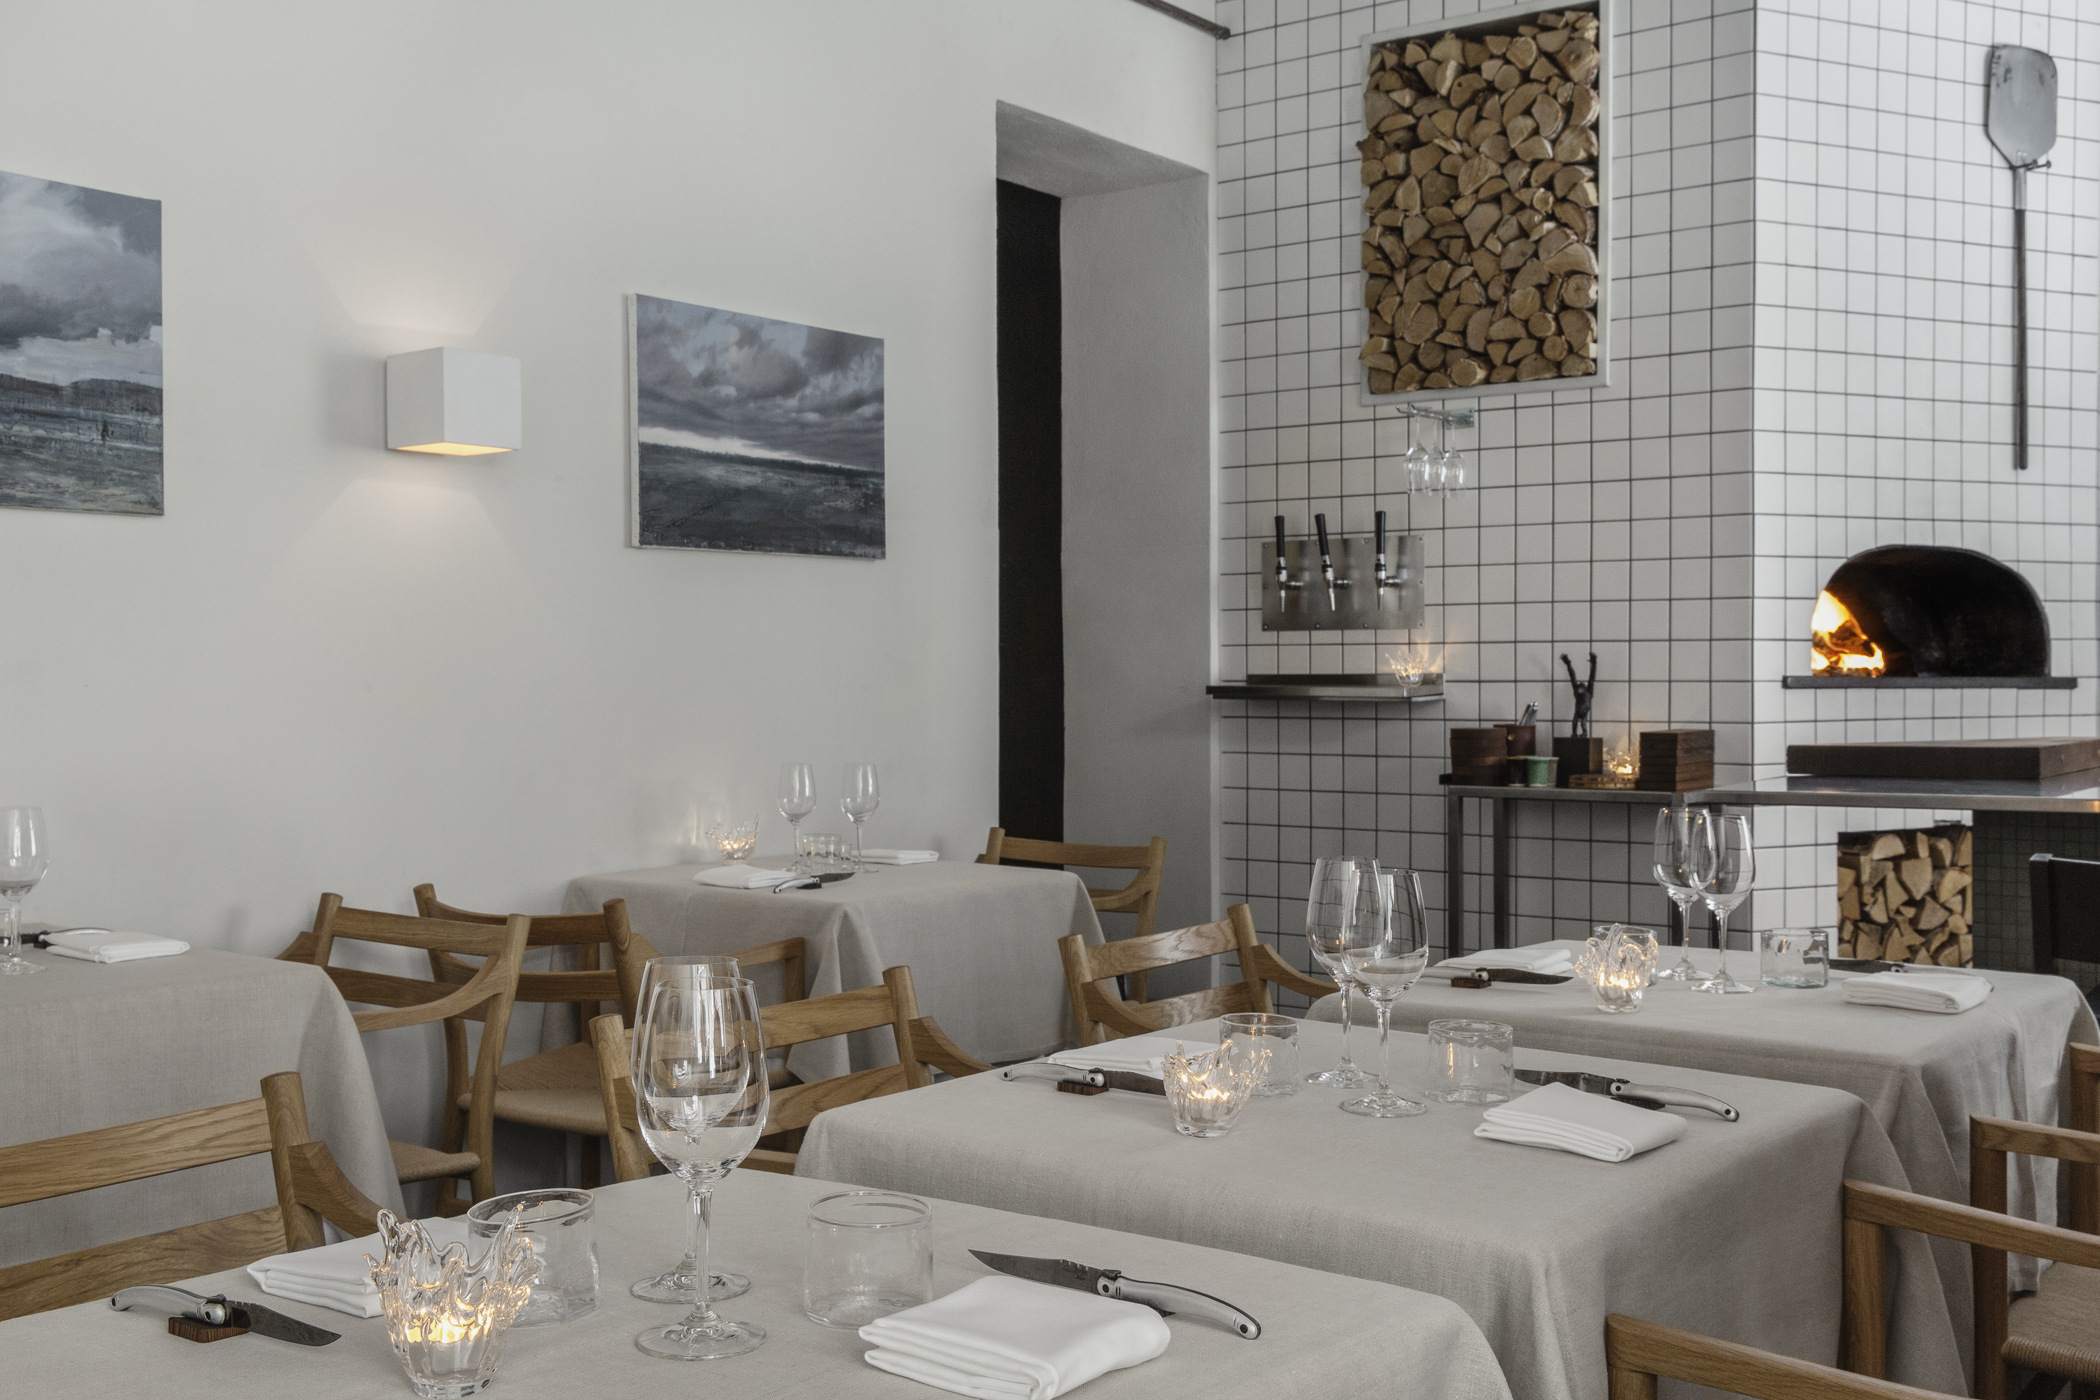 Steal This Look: 10 Design Ideas from a Tiny, Michelin-Starred Restaurant in Stockholm